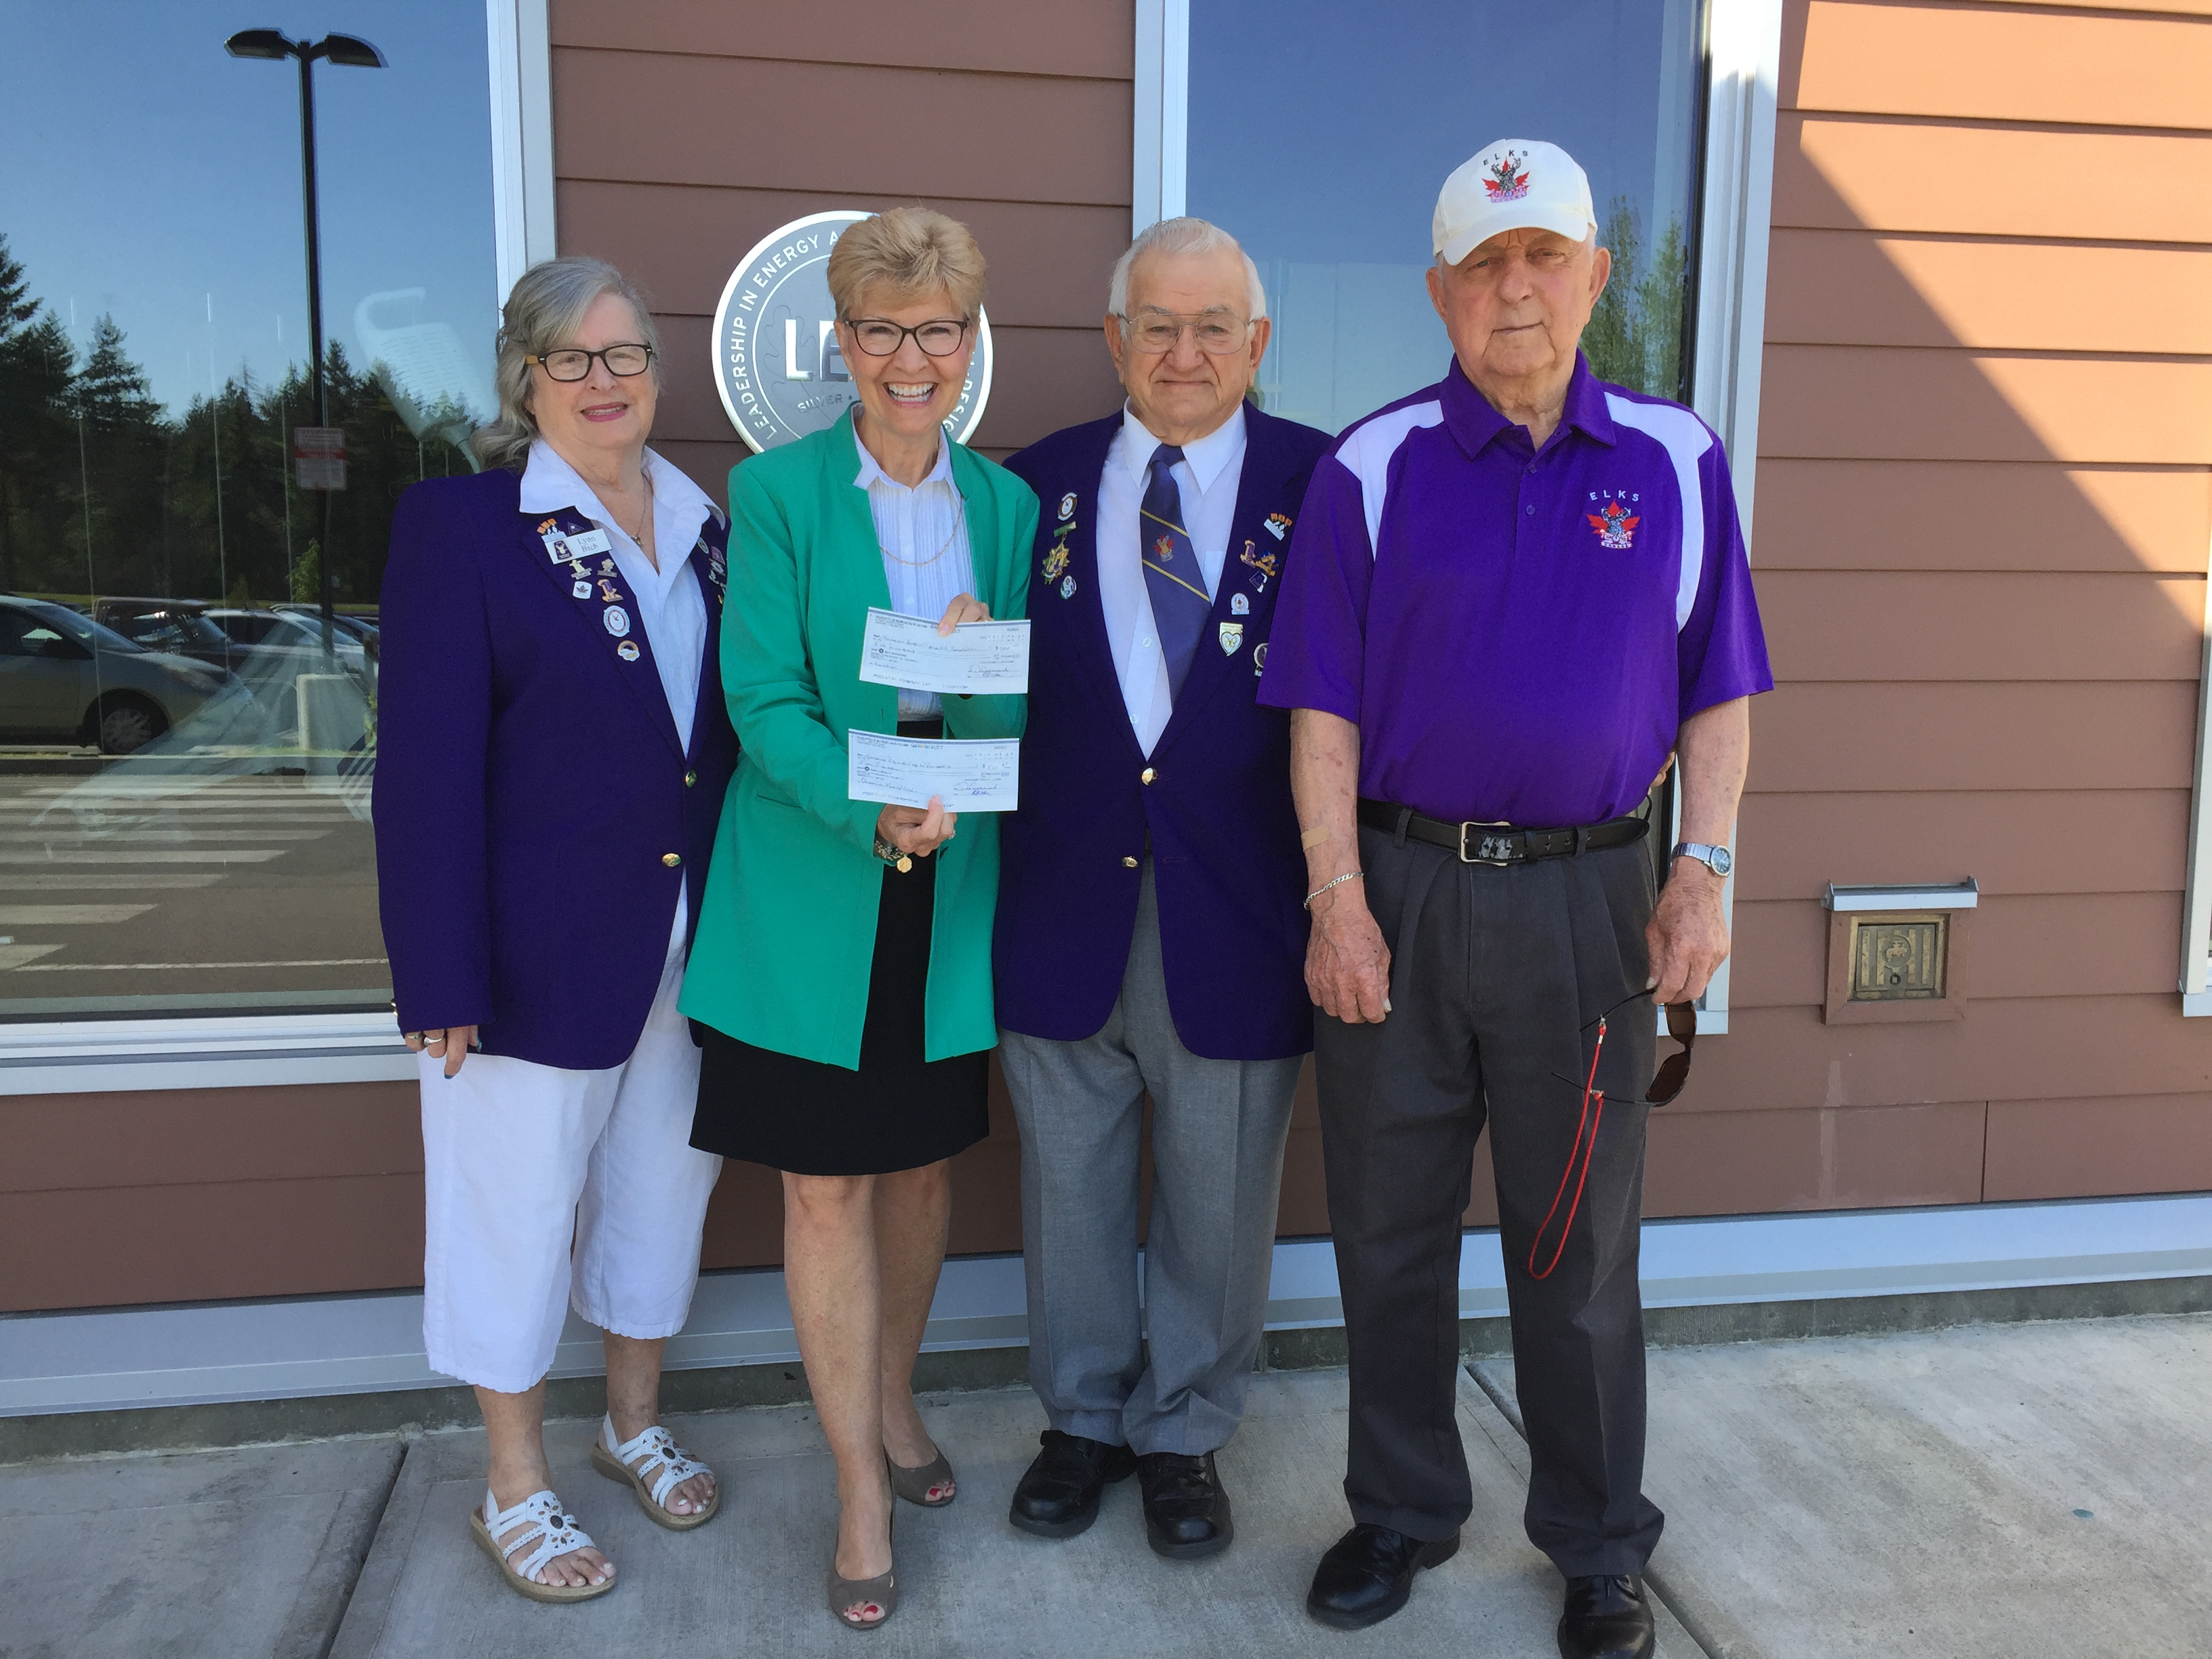 Parksville Qualicum Elks support Oceanside Health Centre and NRGH